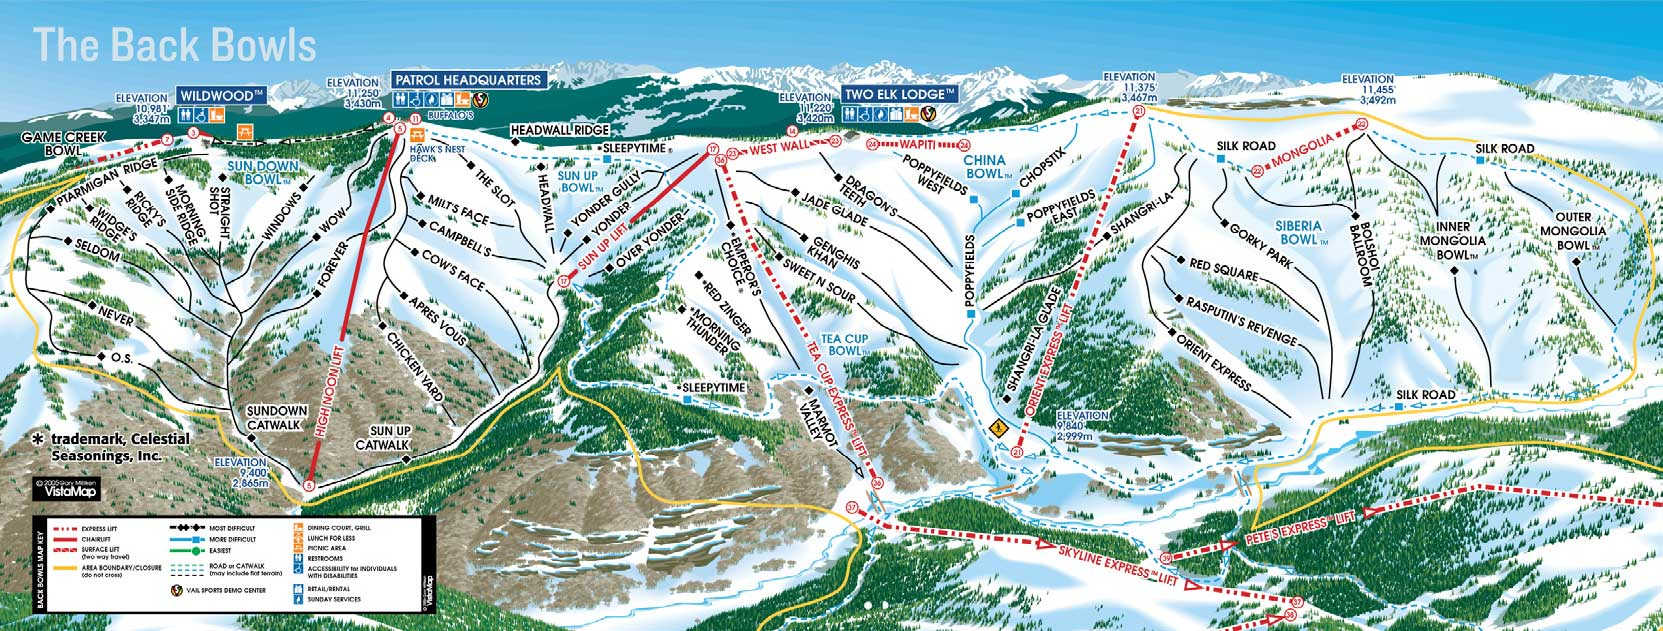 Ski Resort - Map of colorado ski resorts and cities